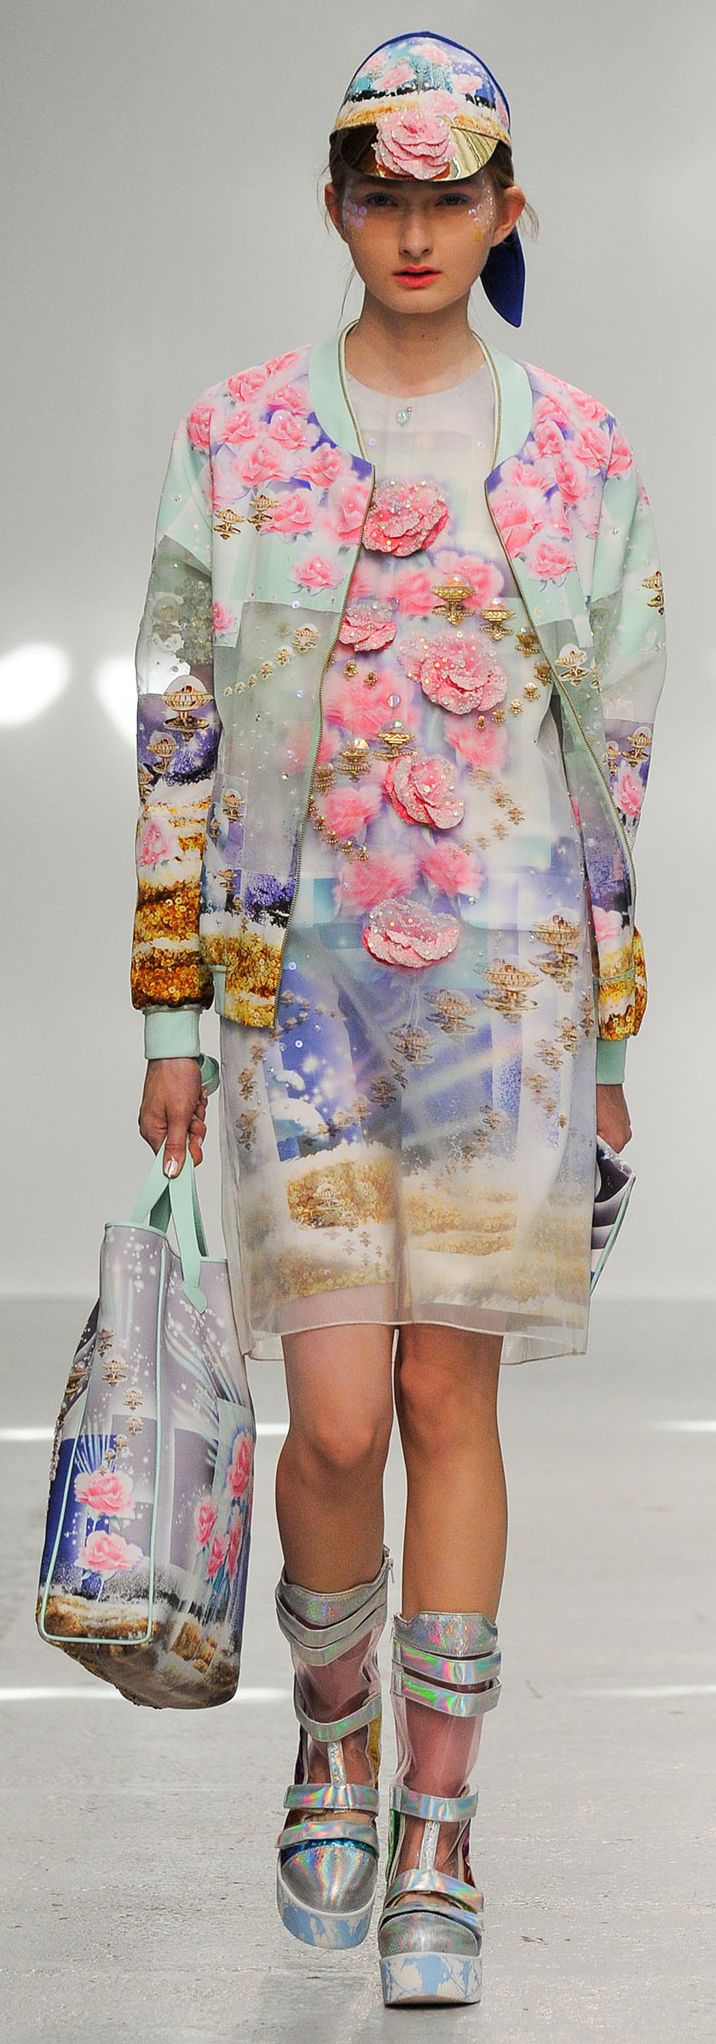 "Manish Arora SS 2015 RTW - the sum of the whole is much less than any one of its parts. The effect is of an upscale ""bag lady""."